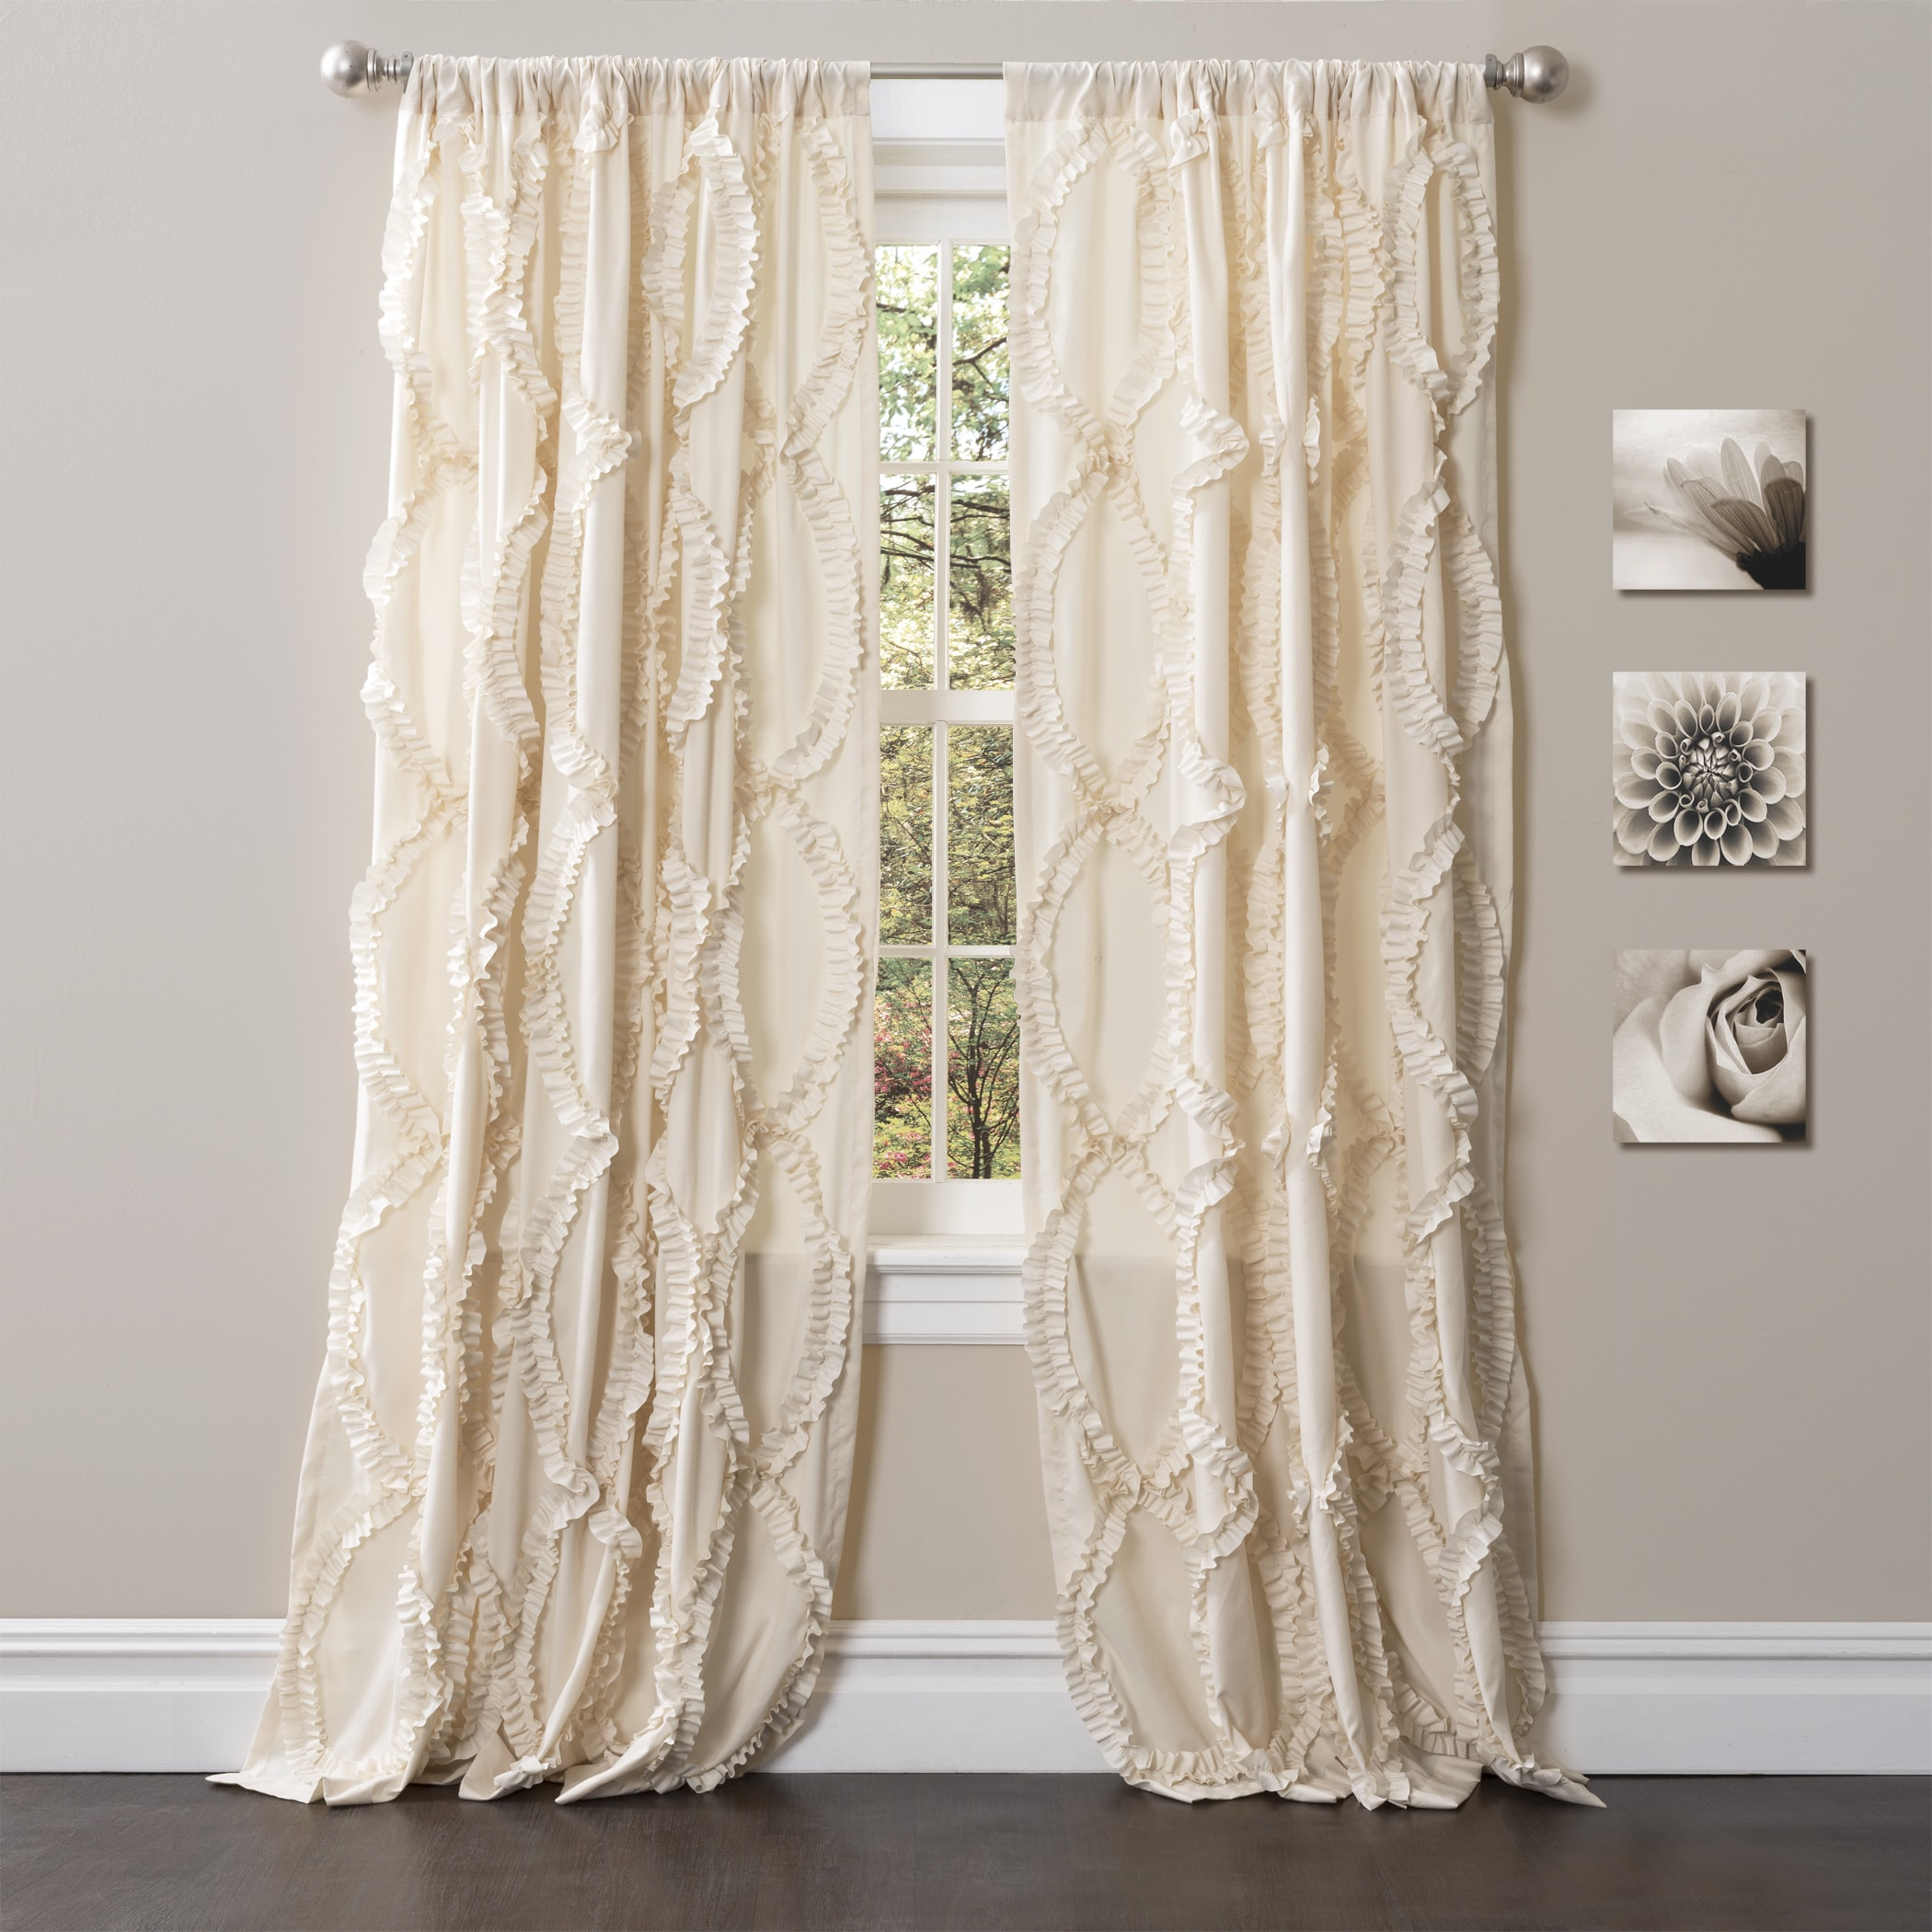 ati top drapes curtain sateen pair panel grommet home ironwork woven garden overstock with blackout product